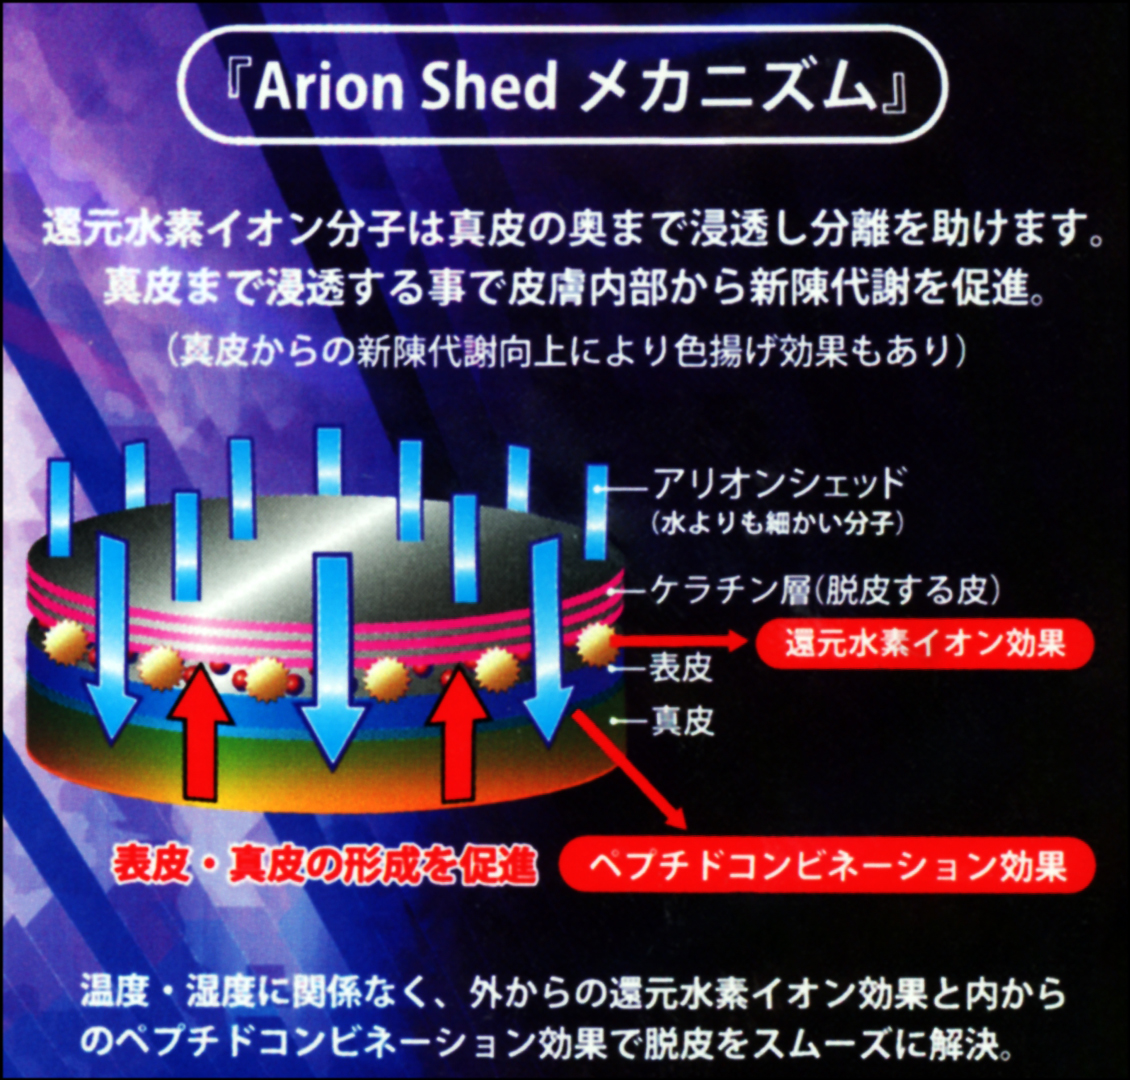 Arion Shedのメカニズム